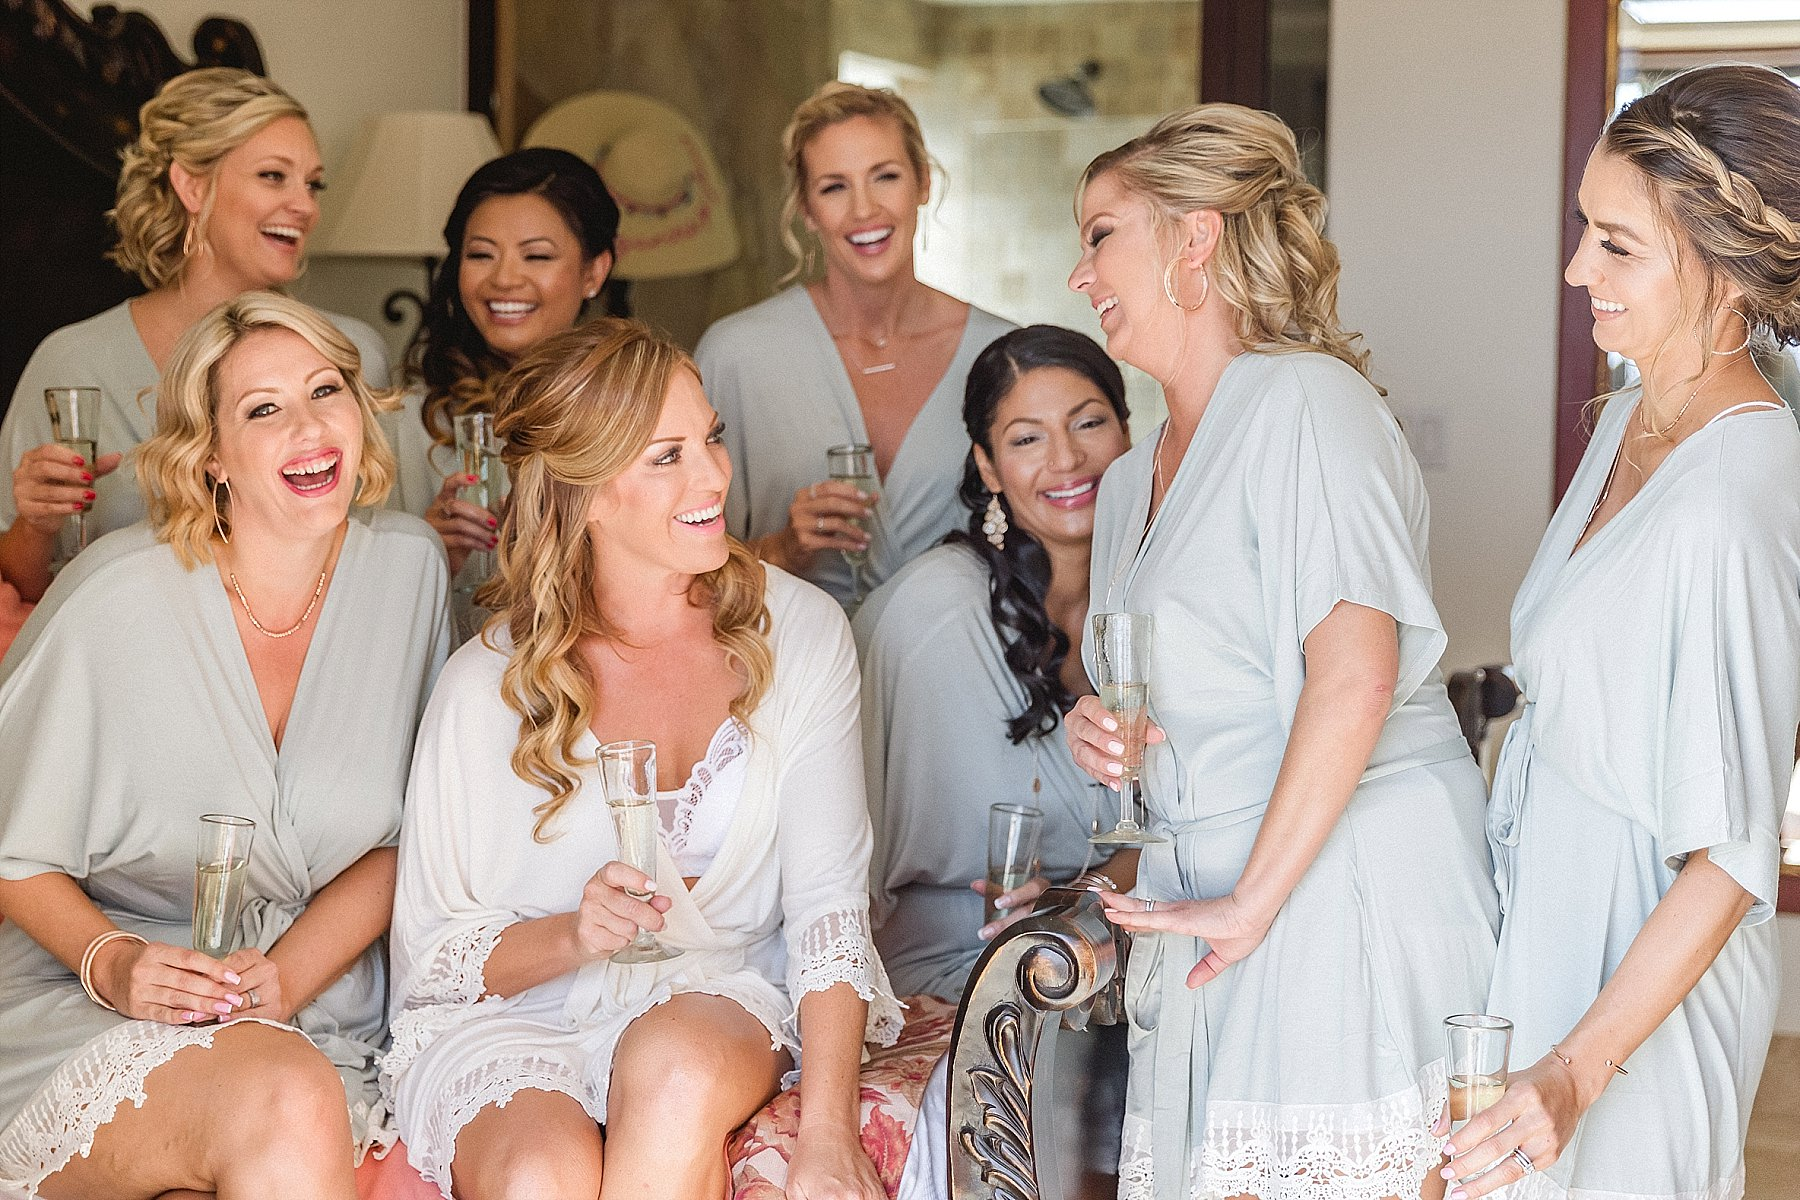 Bride drinking Champagne with her Bridesmaids at Hacienda Encantada in Cabo San Lucas, Mexico. Wedding Planning by Cabo Wedding Services and the Wedding took place at Flora Farms.